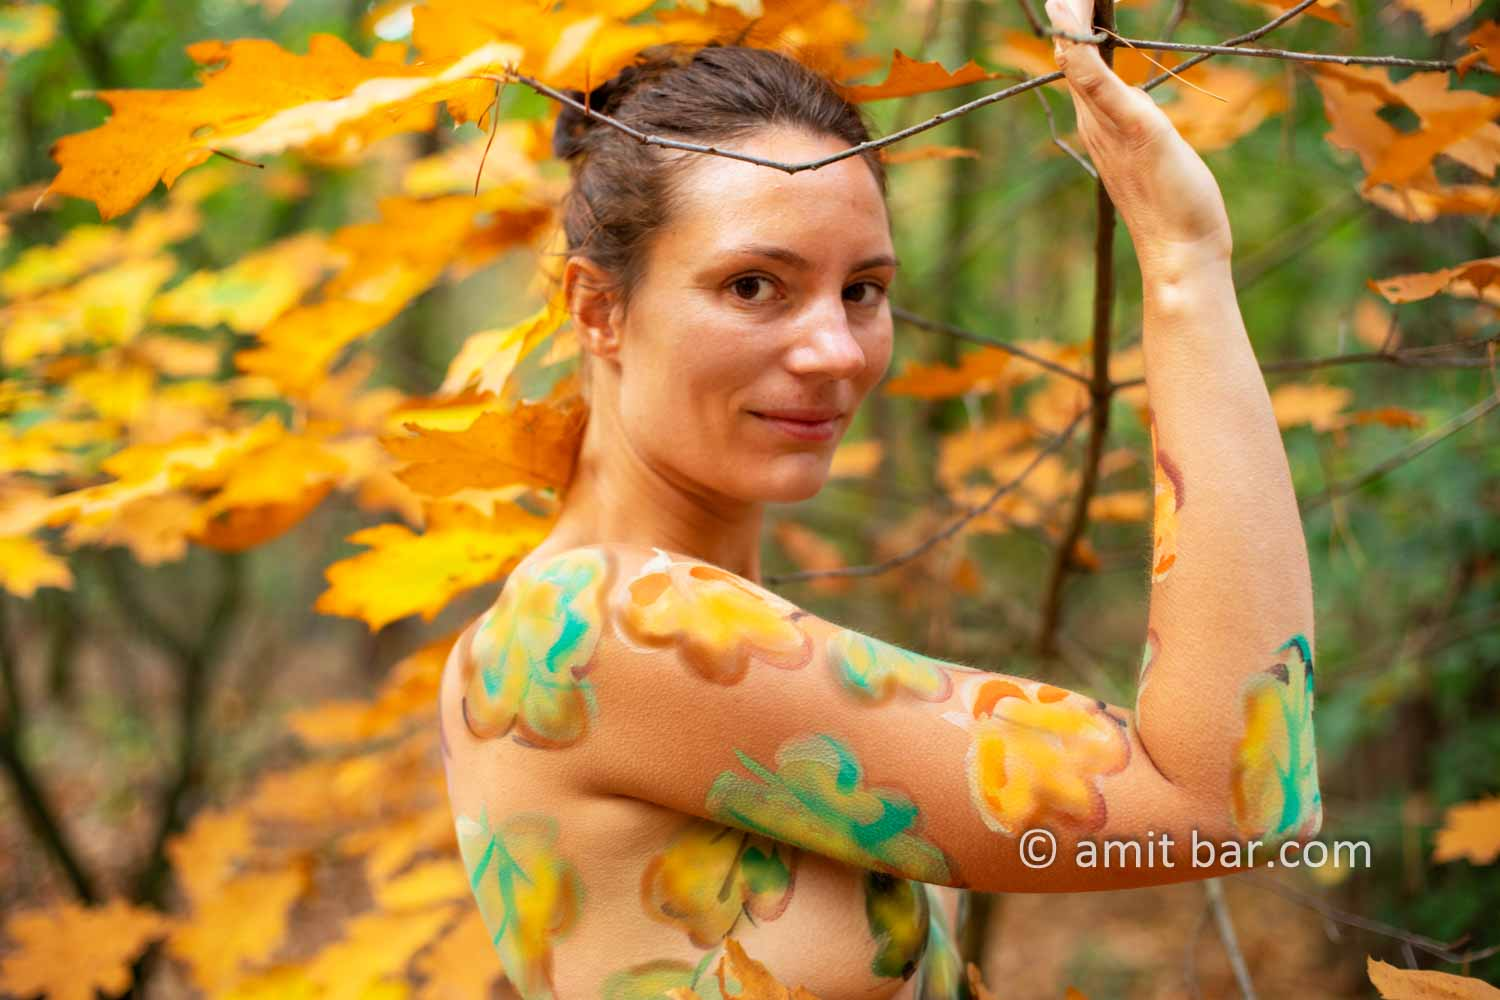 Body painted autumn leaves III: Autumn leaves painted on a model in the forest beside Doetinchem, The Netherlands